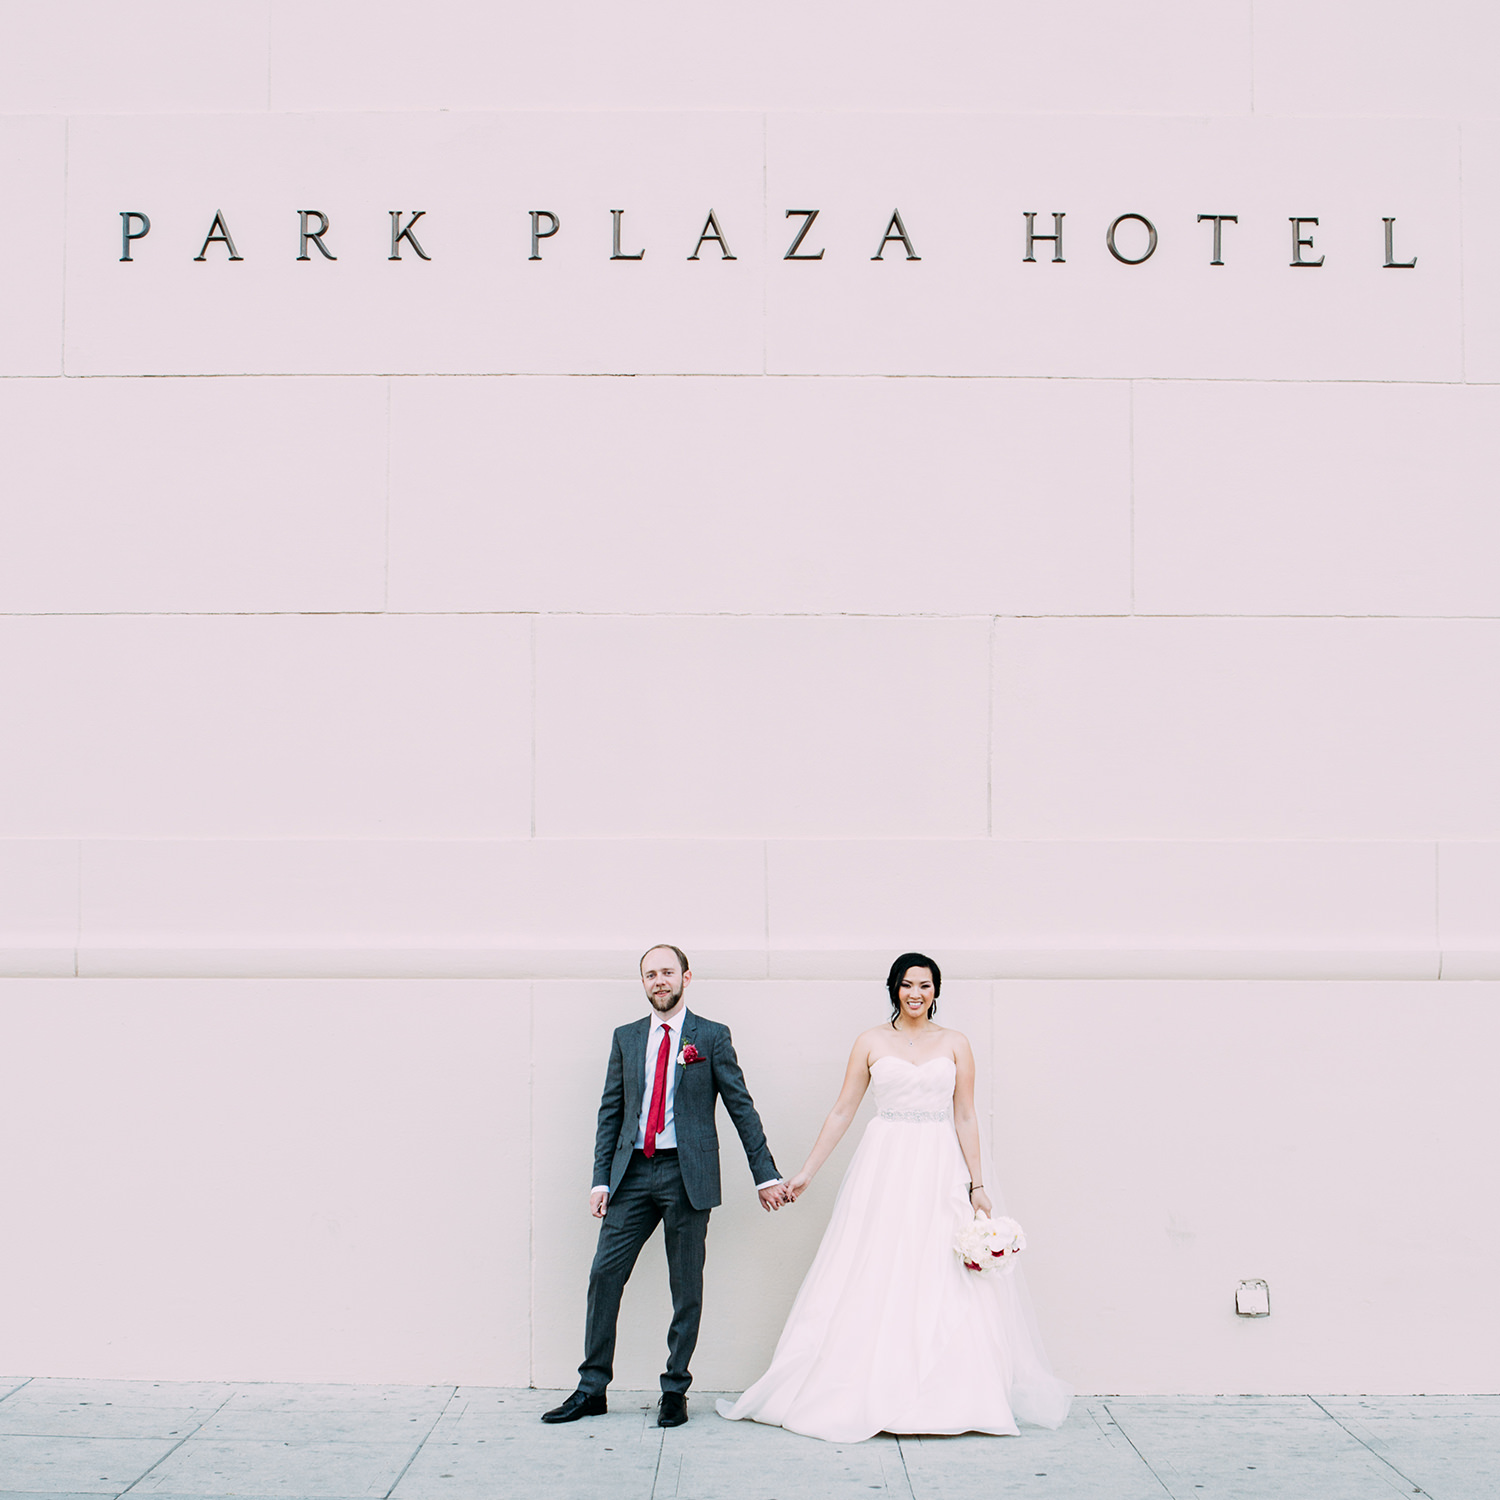 richard + jen | Park Plaza Hotel Wedding